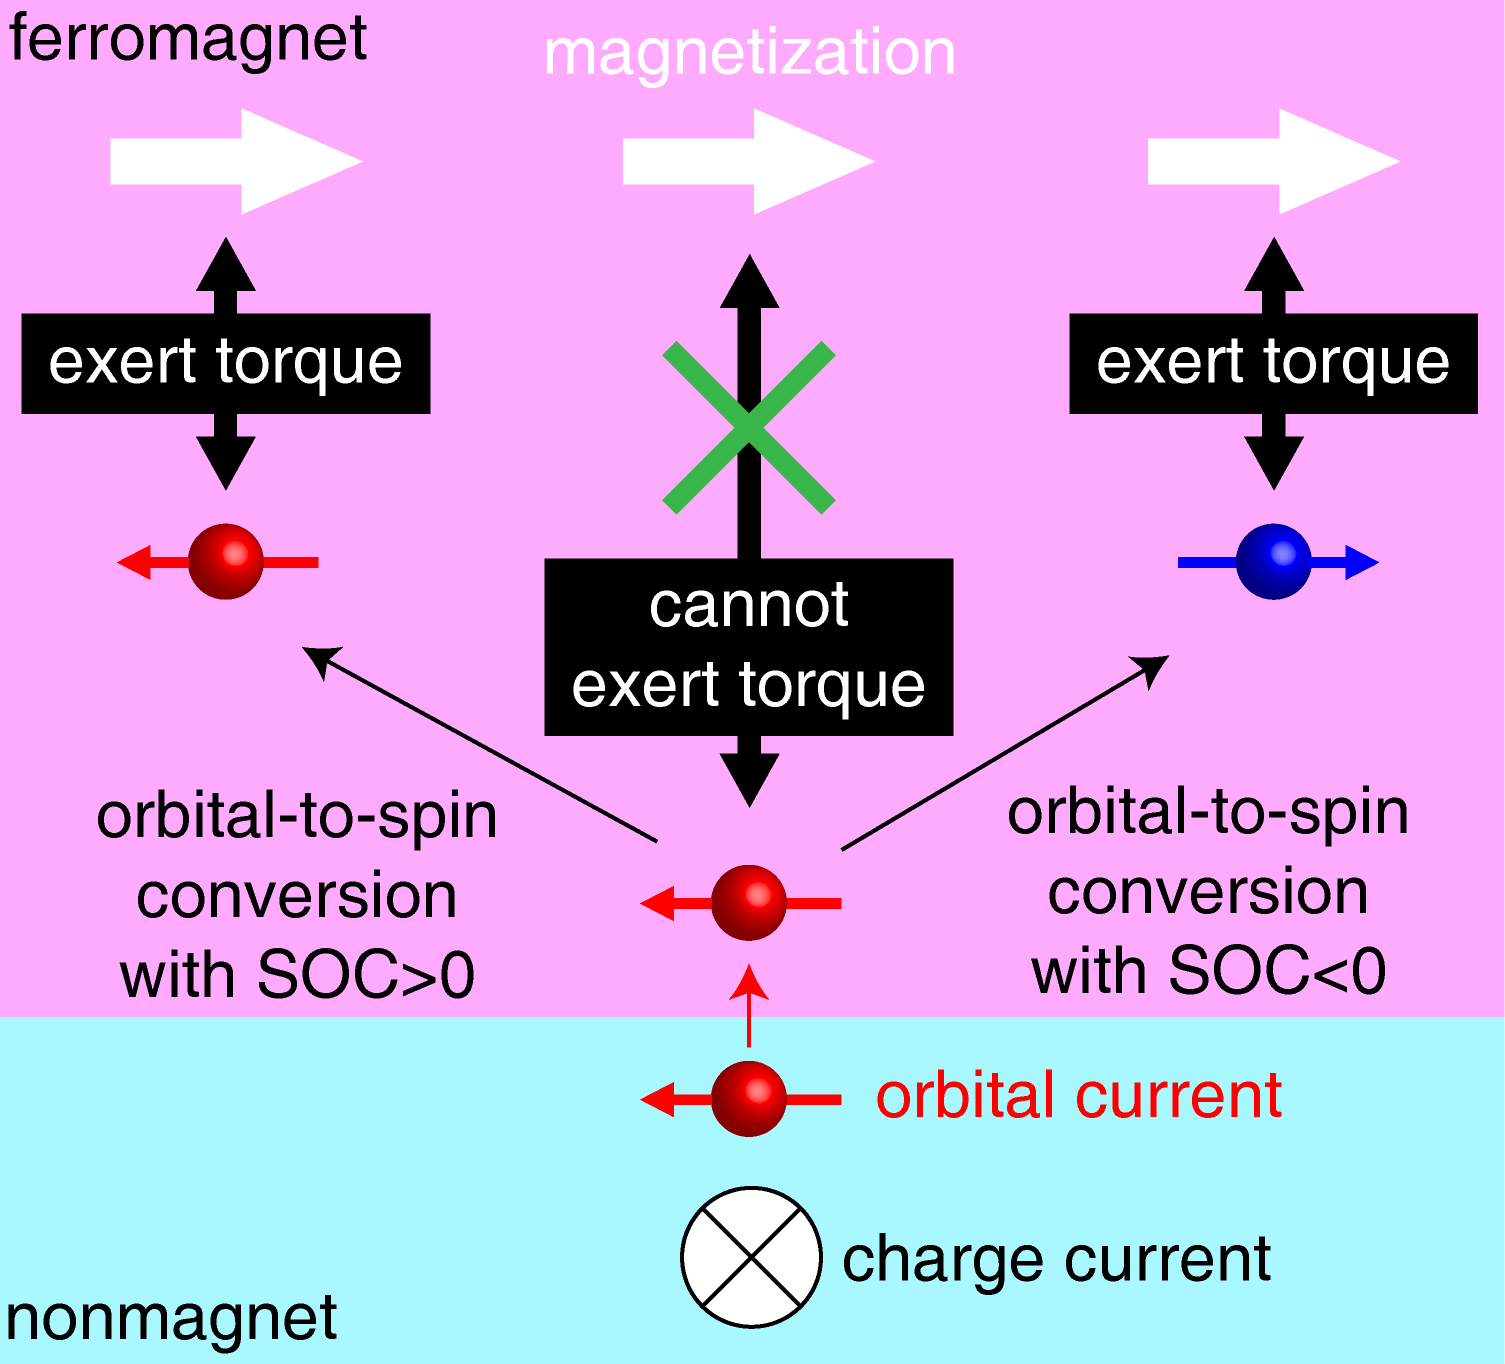 Figure 2. Schematic of mechanism for exerting orbital torque. The orbital current cannot exert the spin torque on the magnetization directly. The orbital-to-spin conversion process via spin-orbit coupling (SOC) is essential to exert the spin torque on the magnetization.